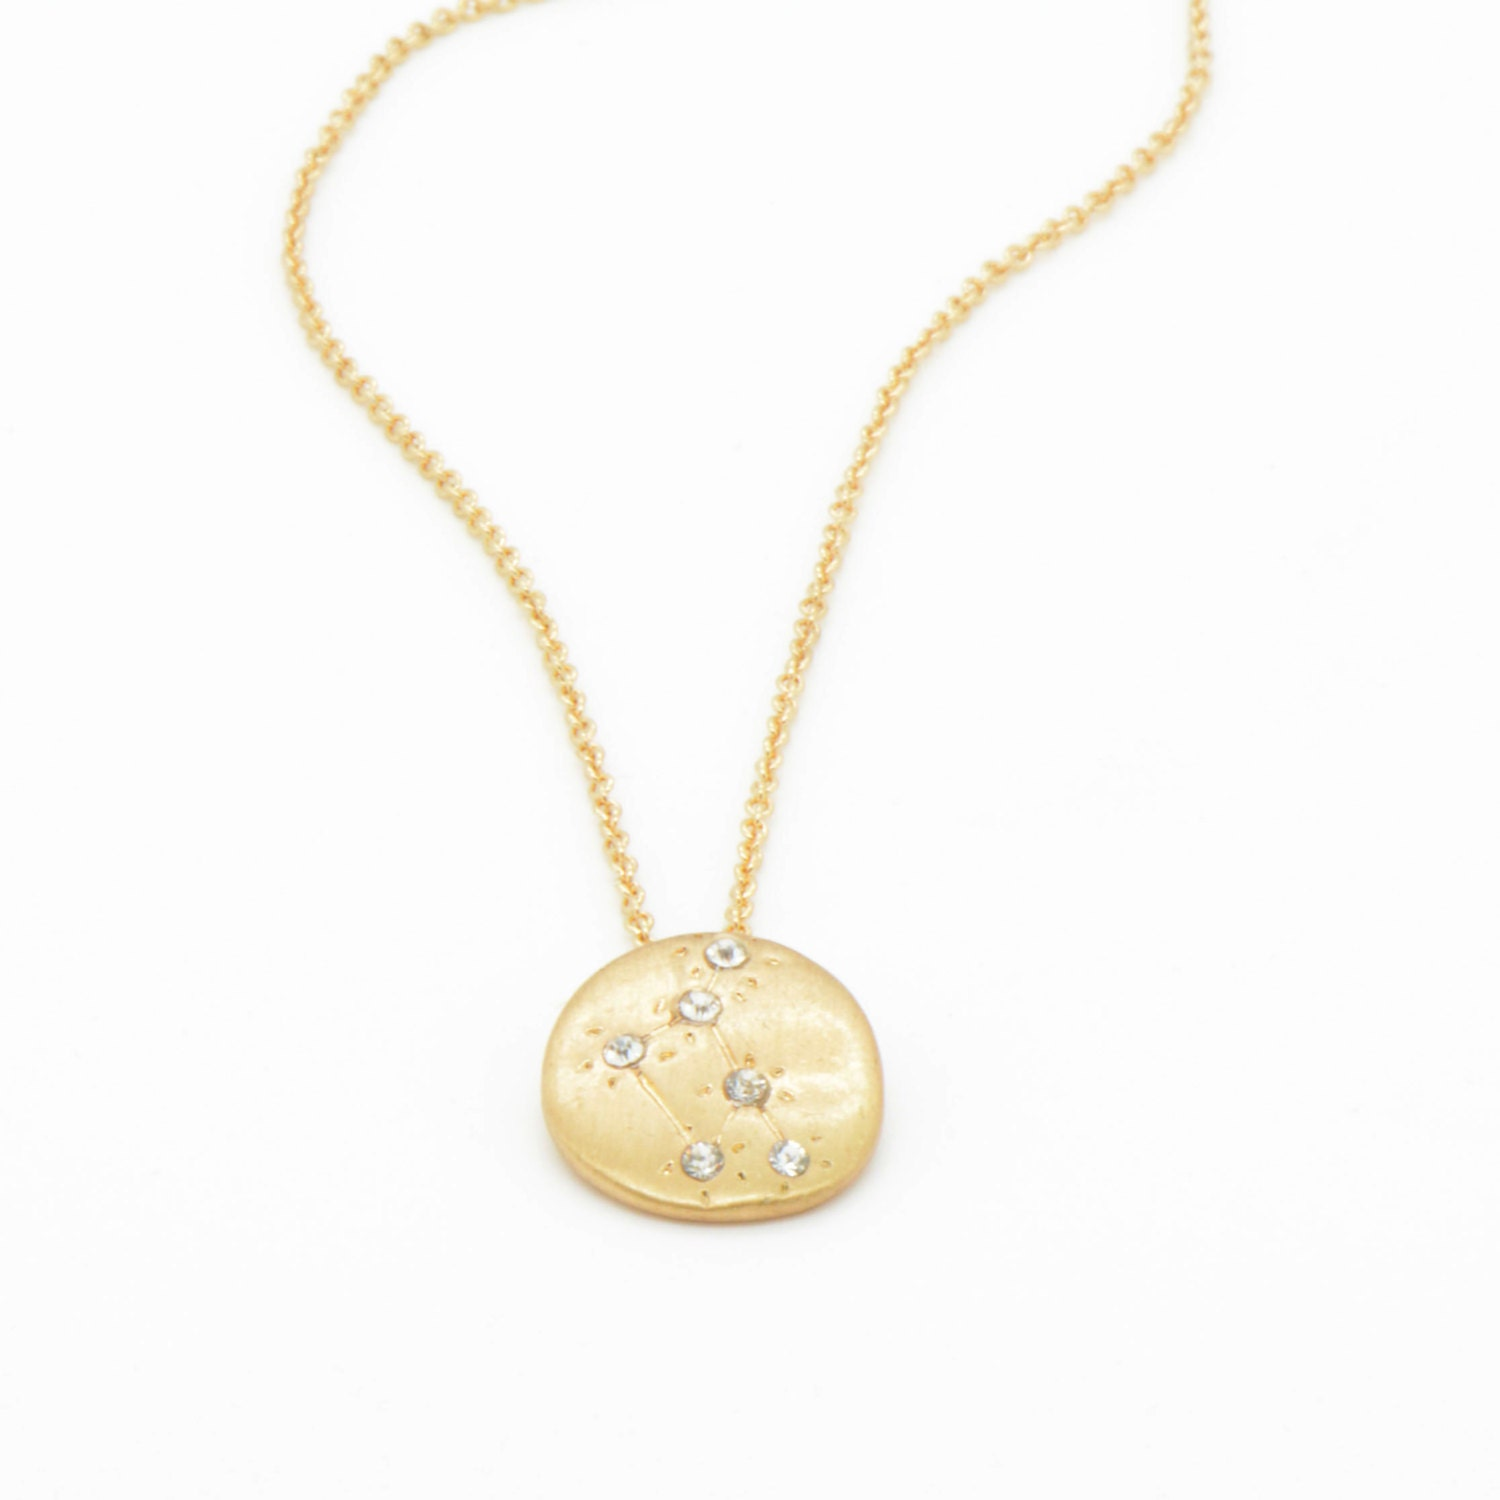 Hand Made LIBRA Zodiac Sign Constellation Necklace 18K Gold